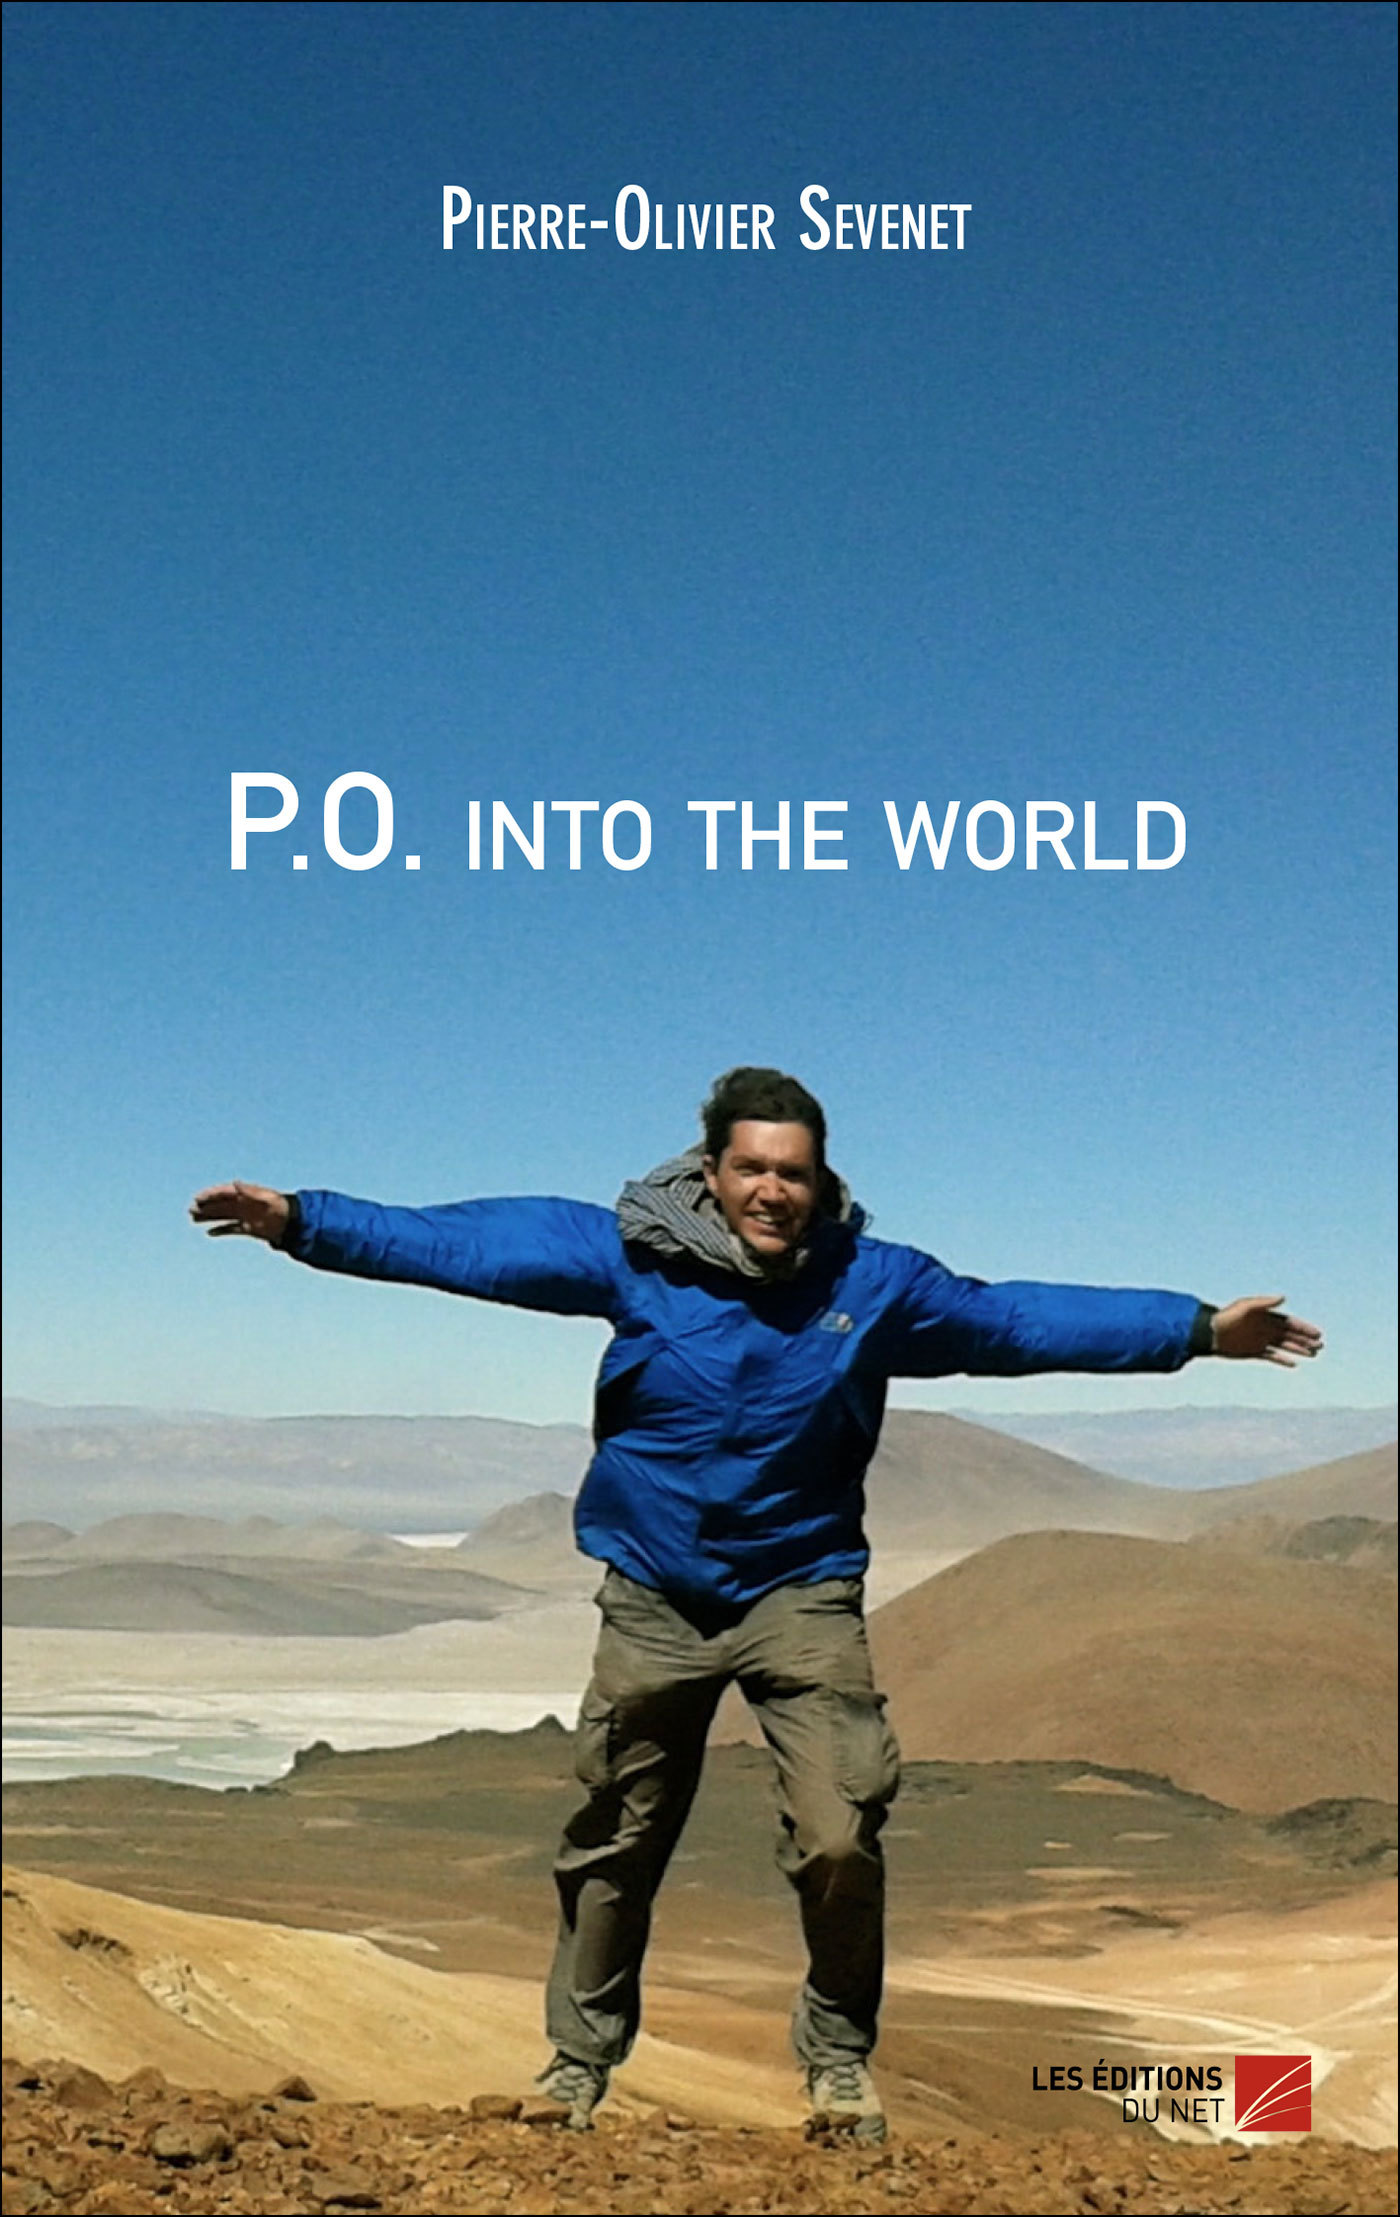 P.O. INTO THE WORLD